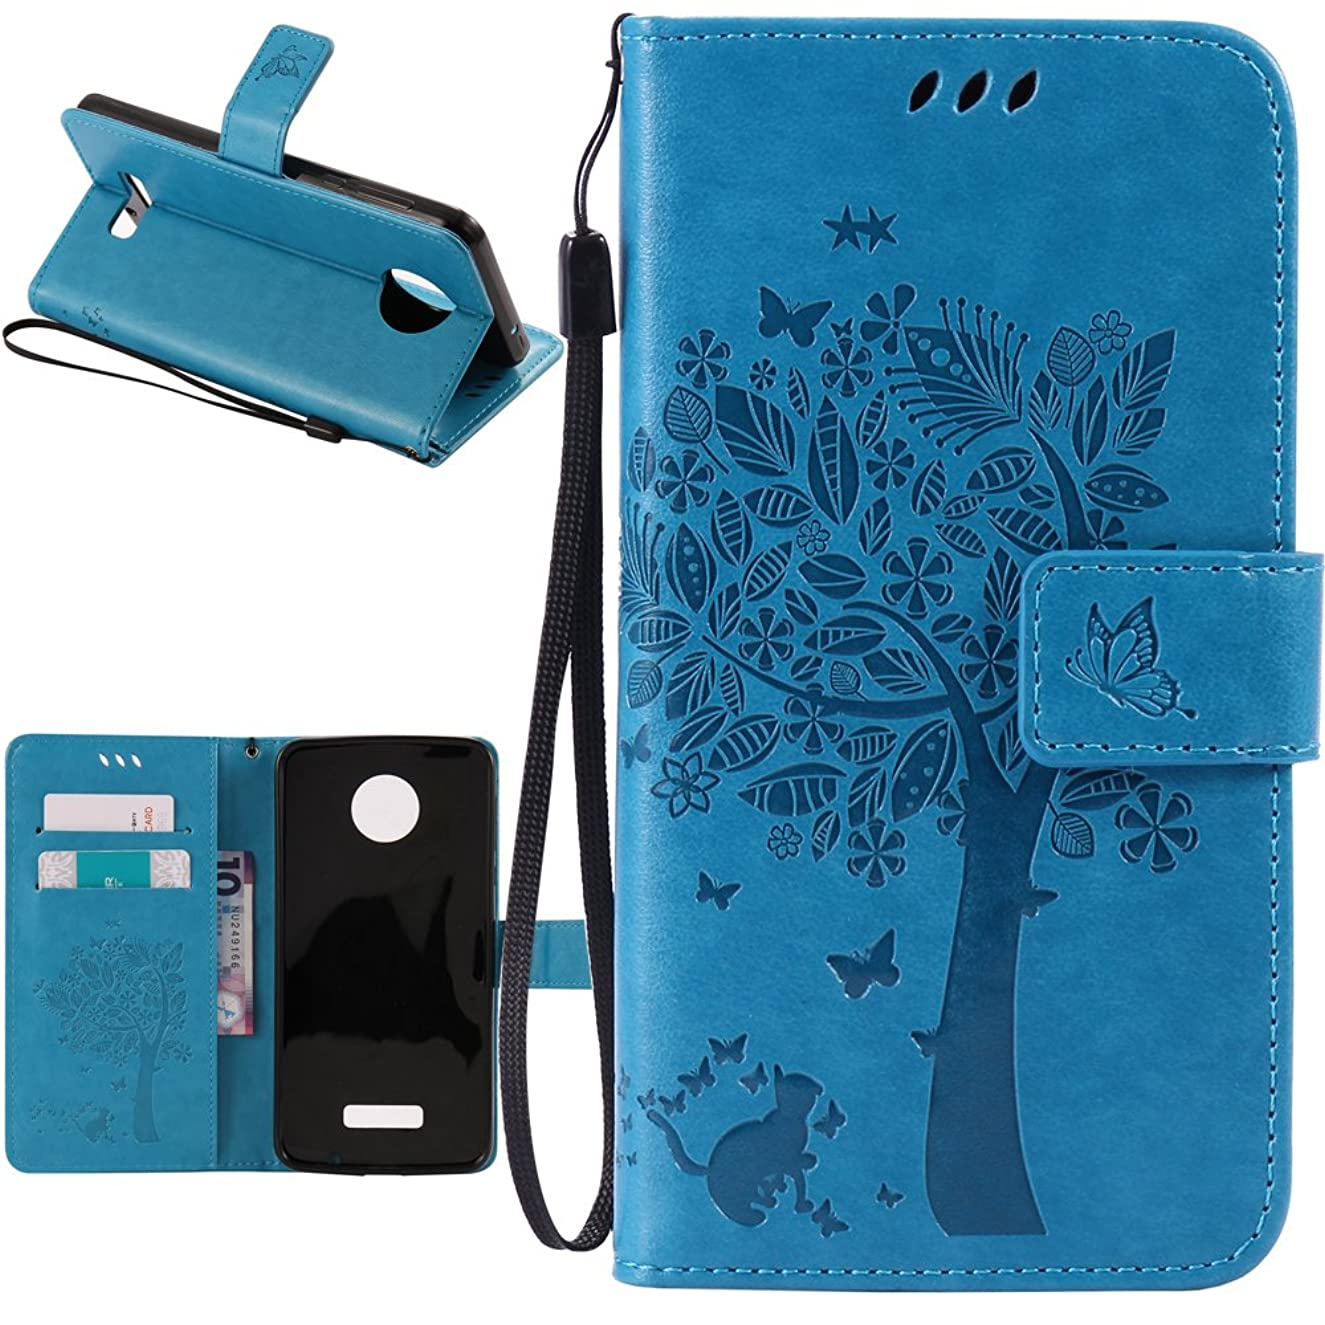 Moto Z Force Case, Harryshell(TM) Caving Tree Kickstand Flip PU Wallet Leather Protective Case Cover with Card Slot & Wrist Strap for Motorola Moto Z Force Droid (Blue)